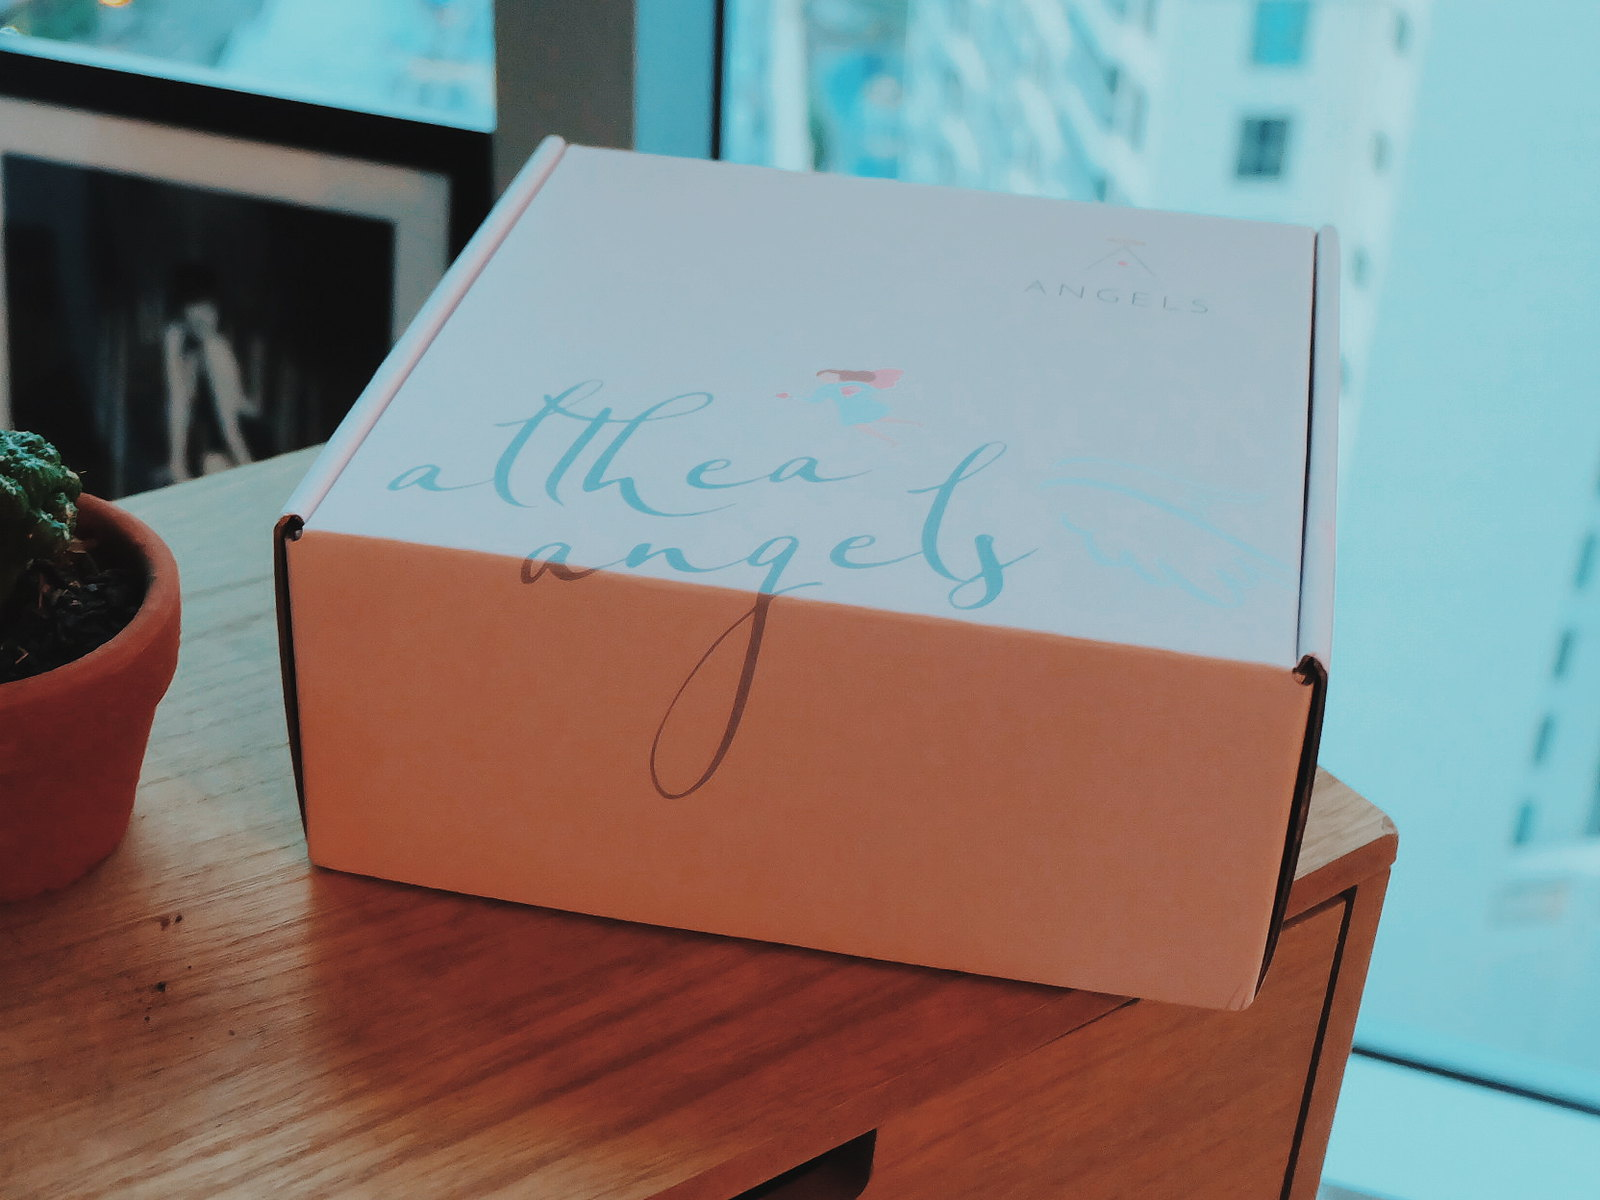 althea angels perks welcome gift unboxing